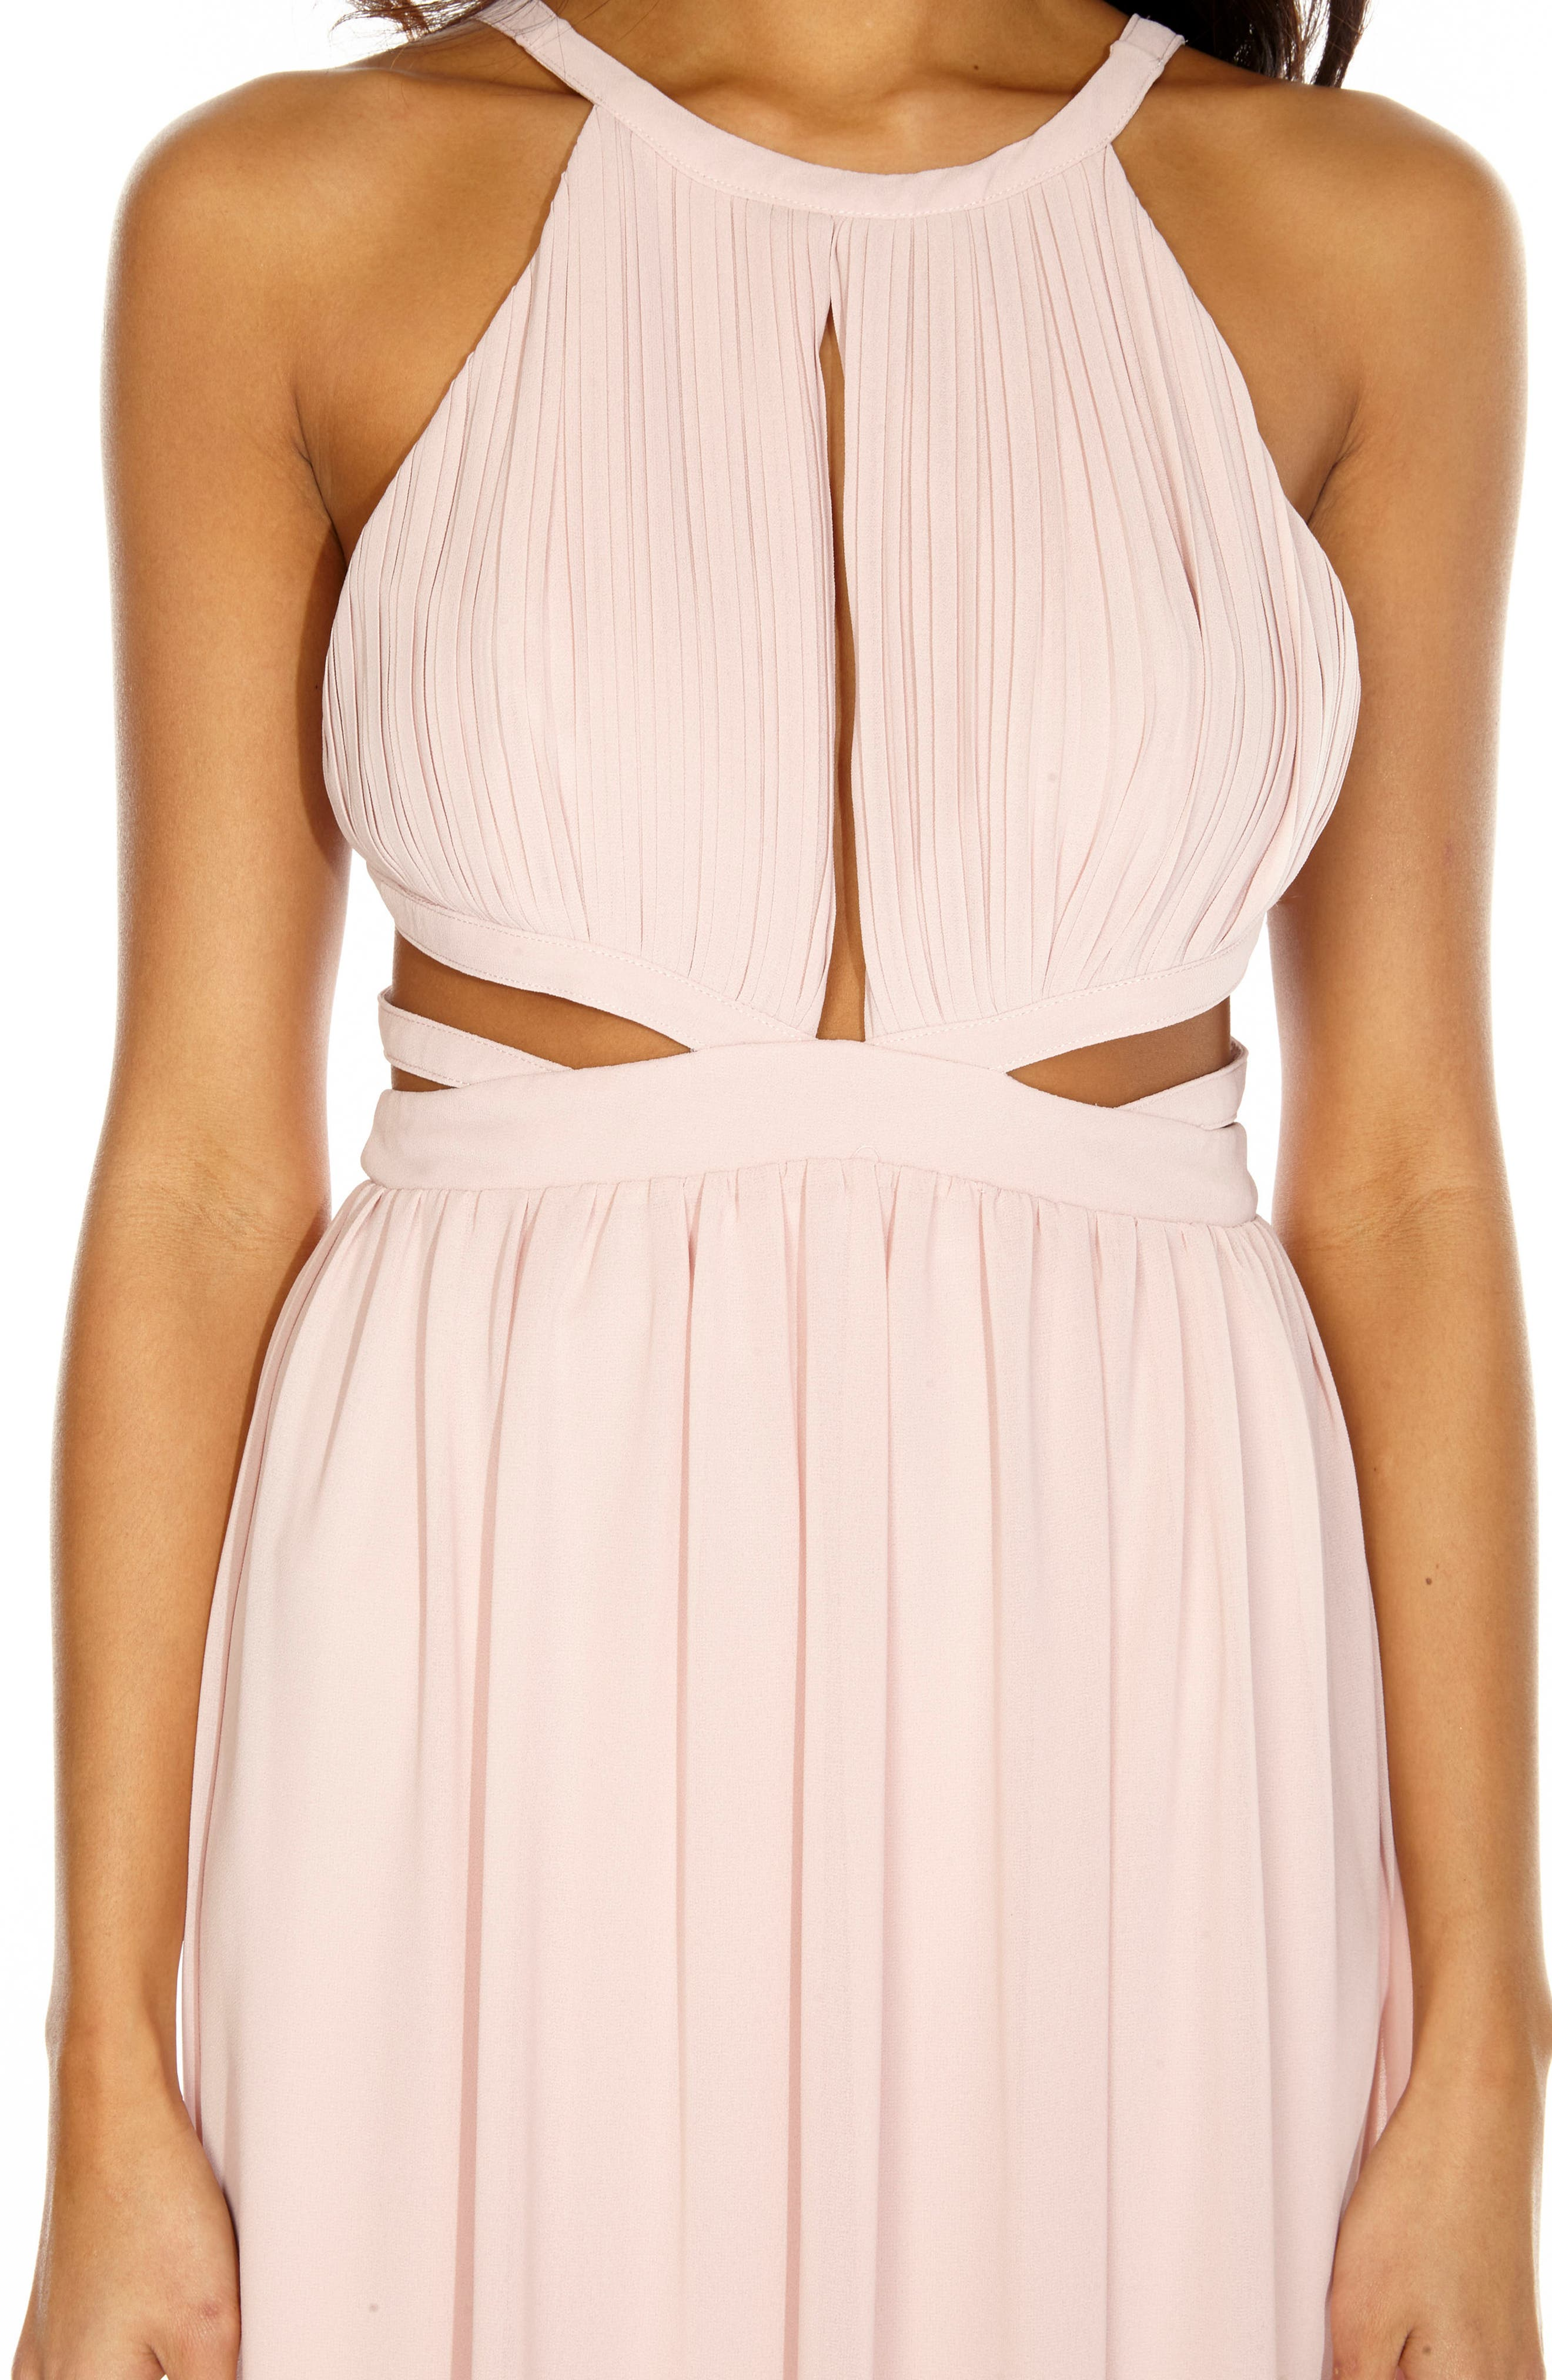 Evanthe Cutout Chiffon Gown,                             Alternate thumbnail 4, color,                             Pearl Pink